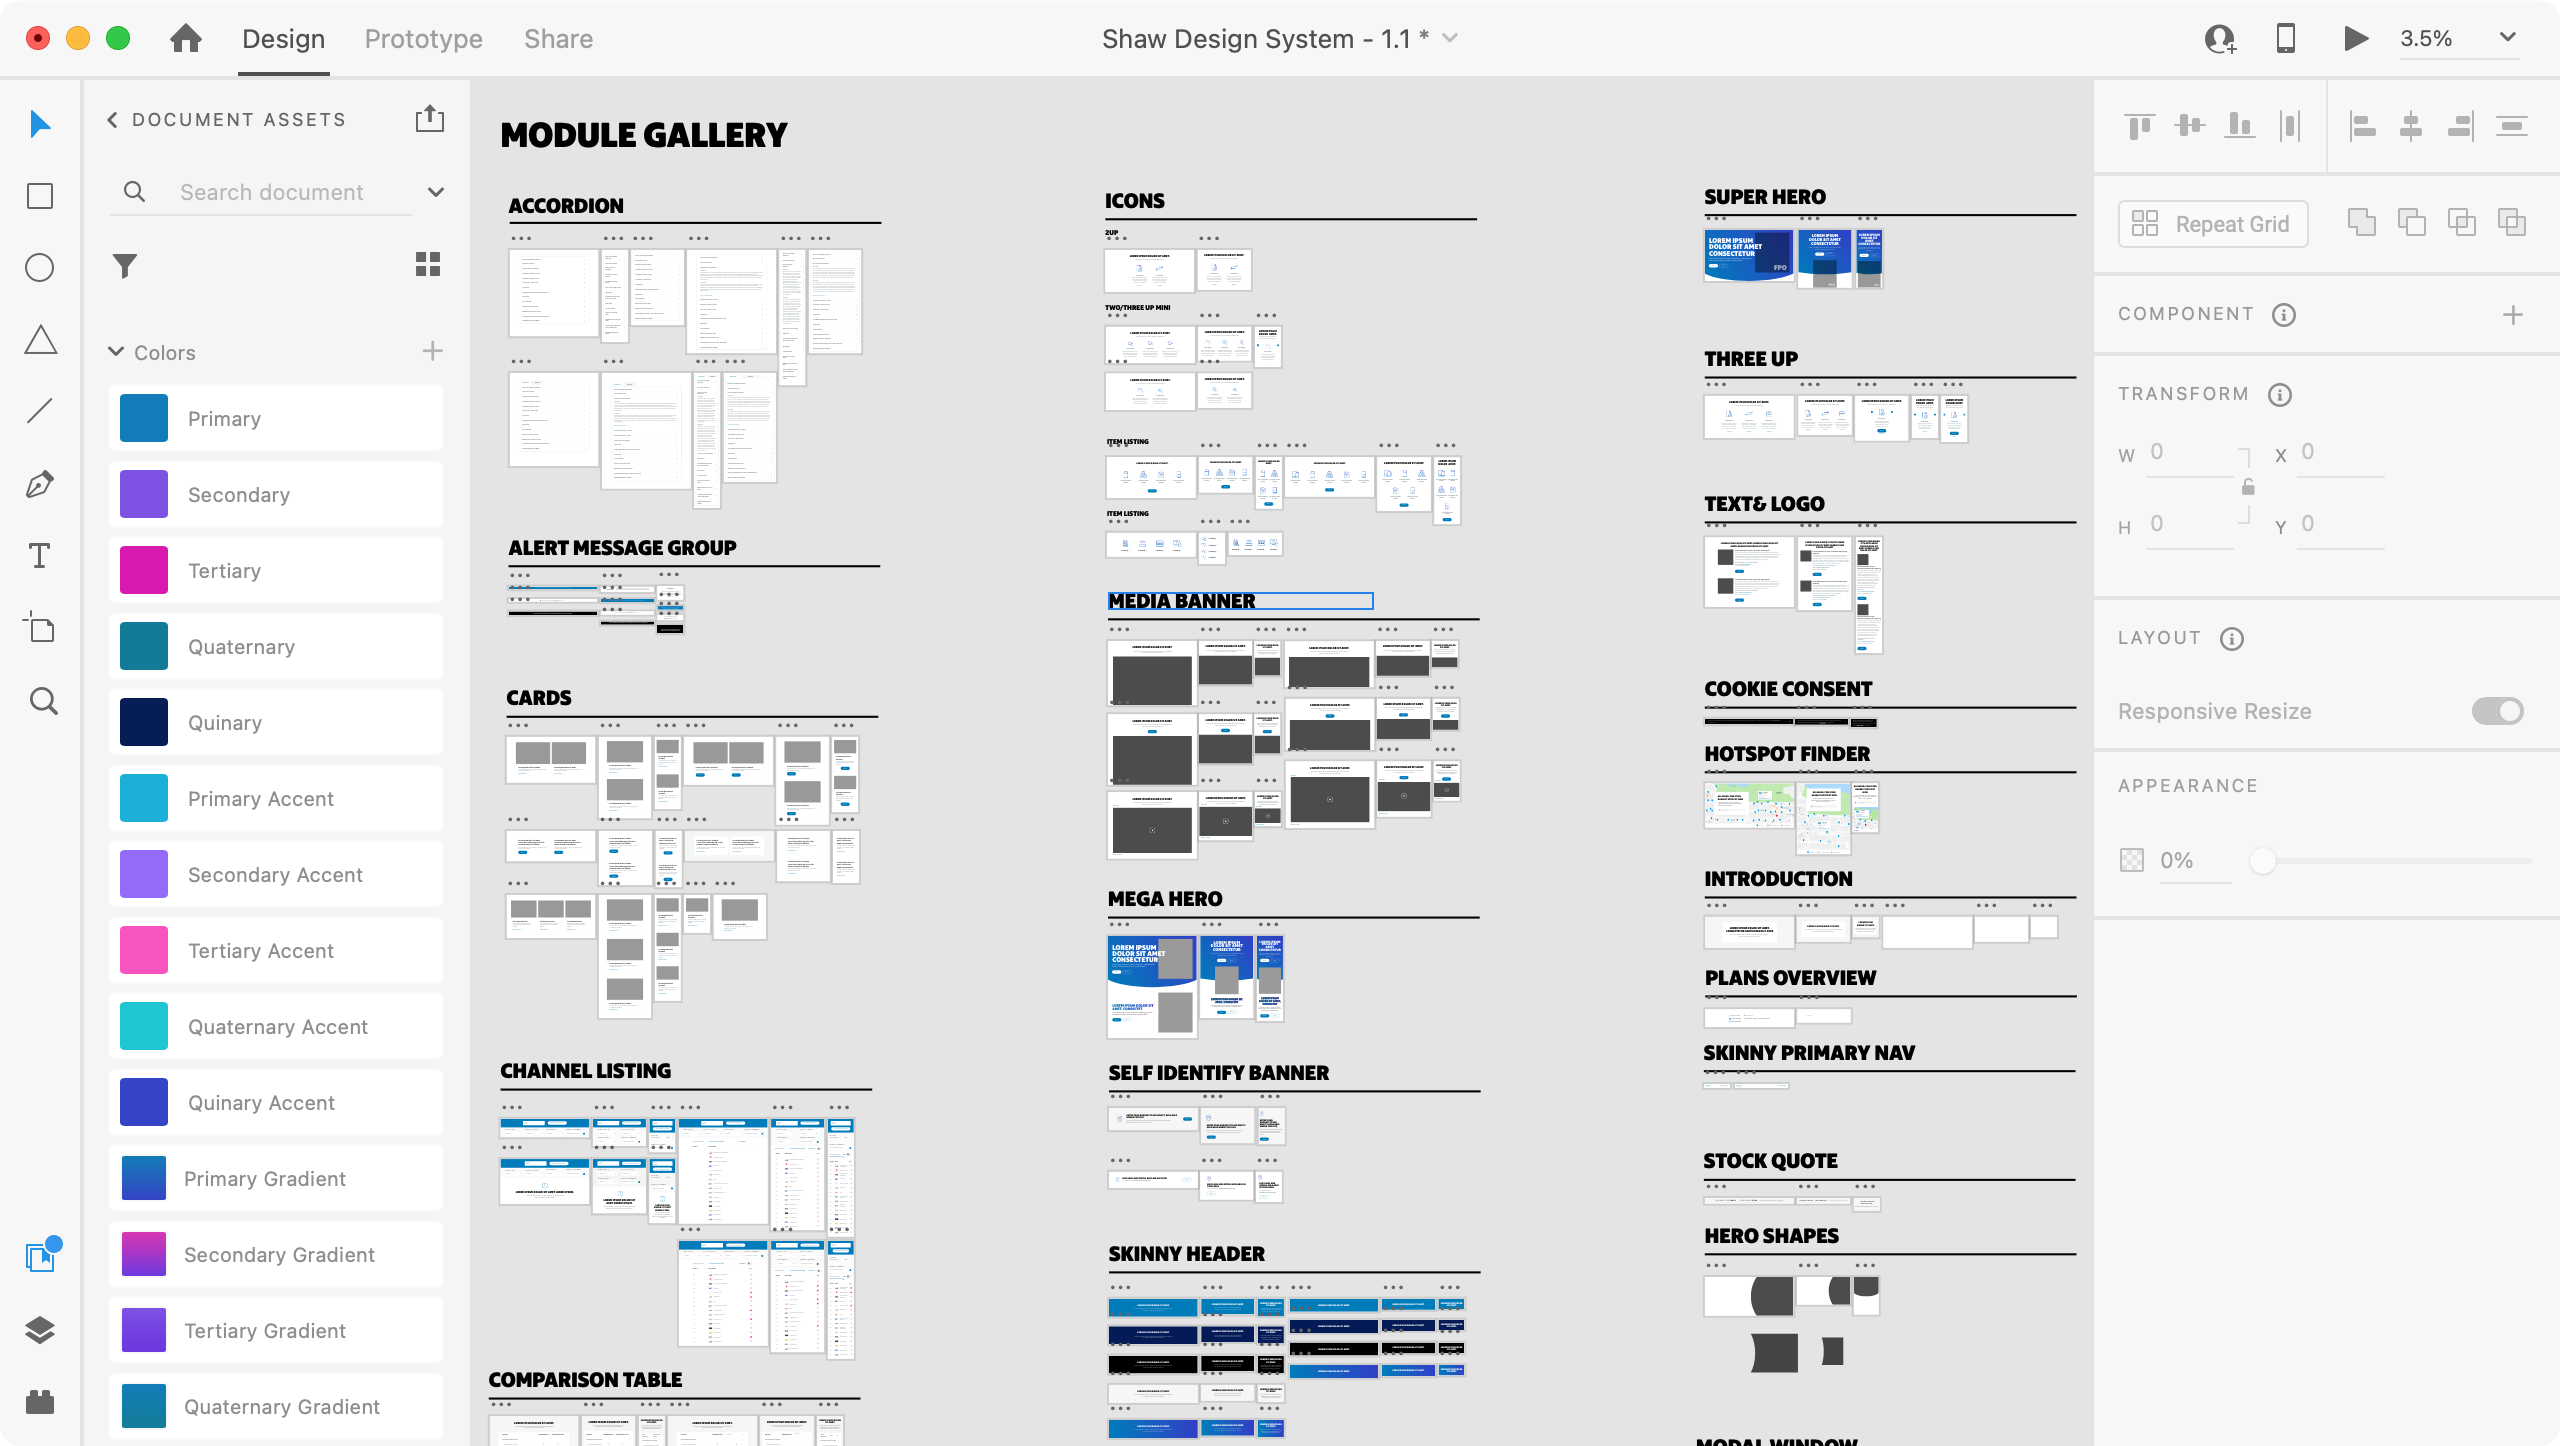 The Adobe XD pattern library